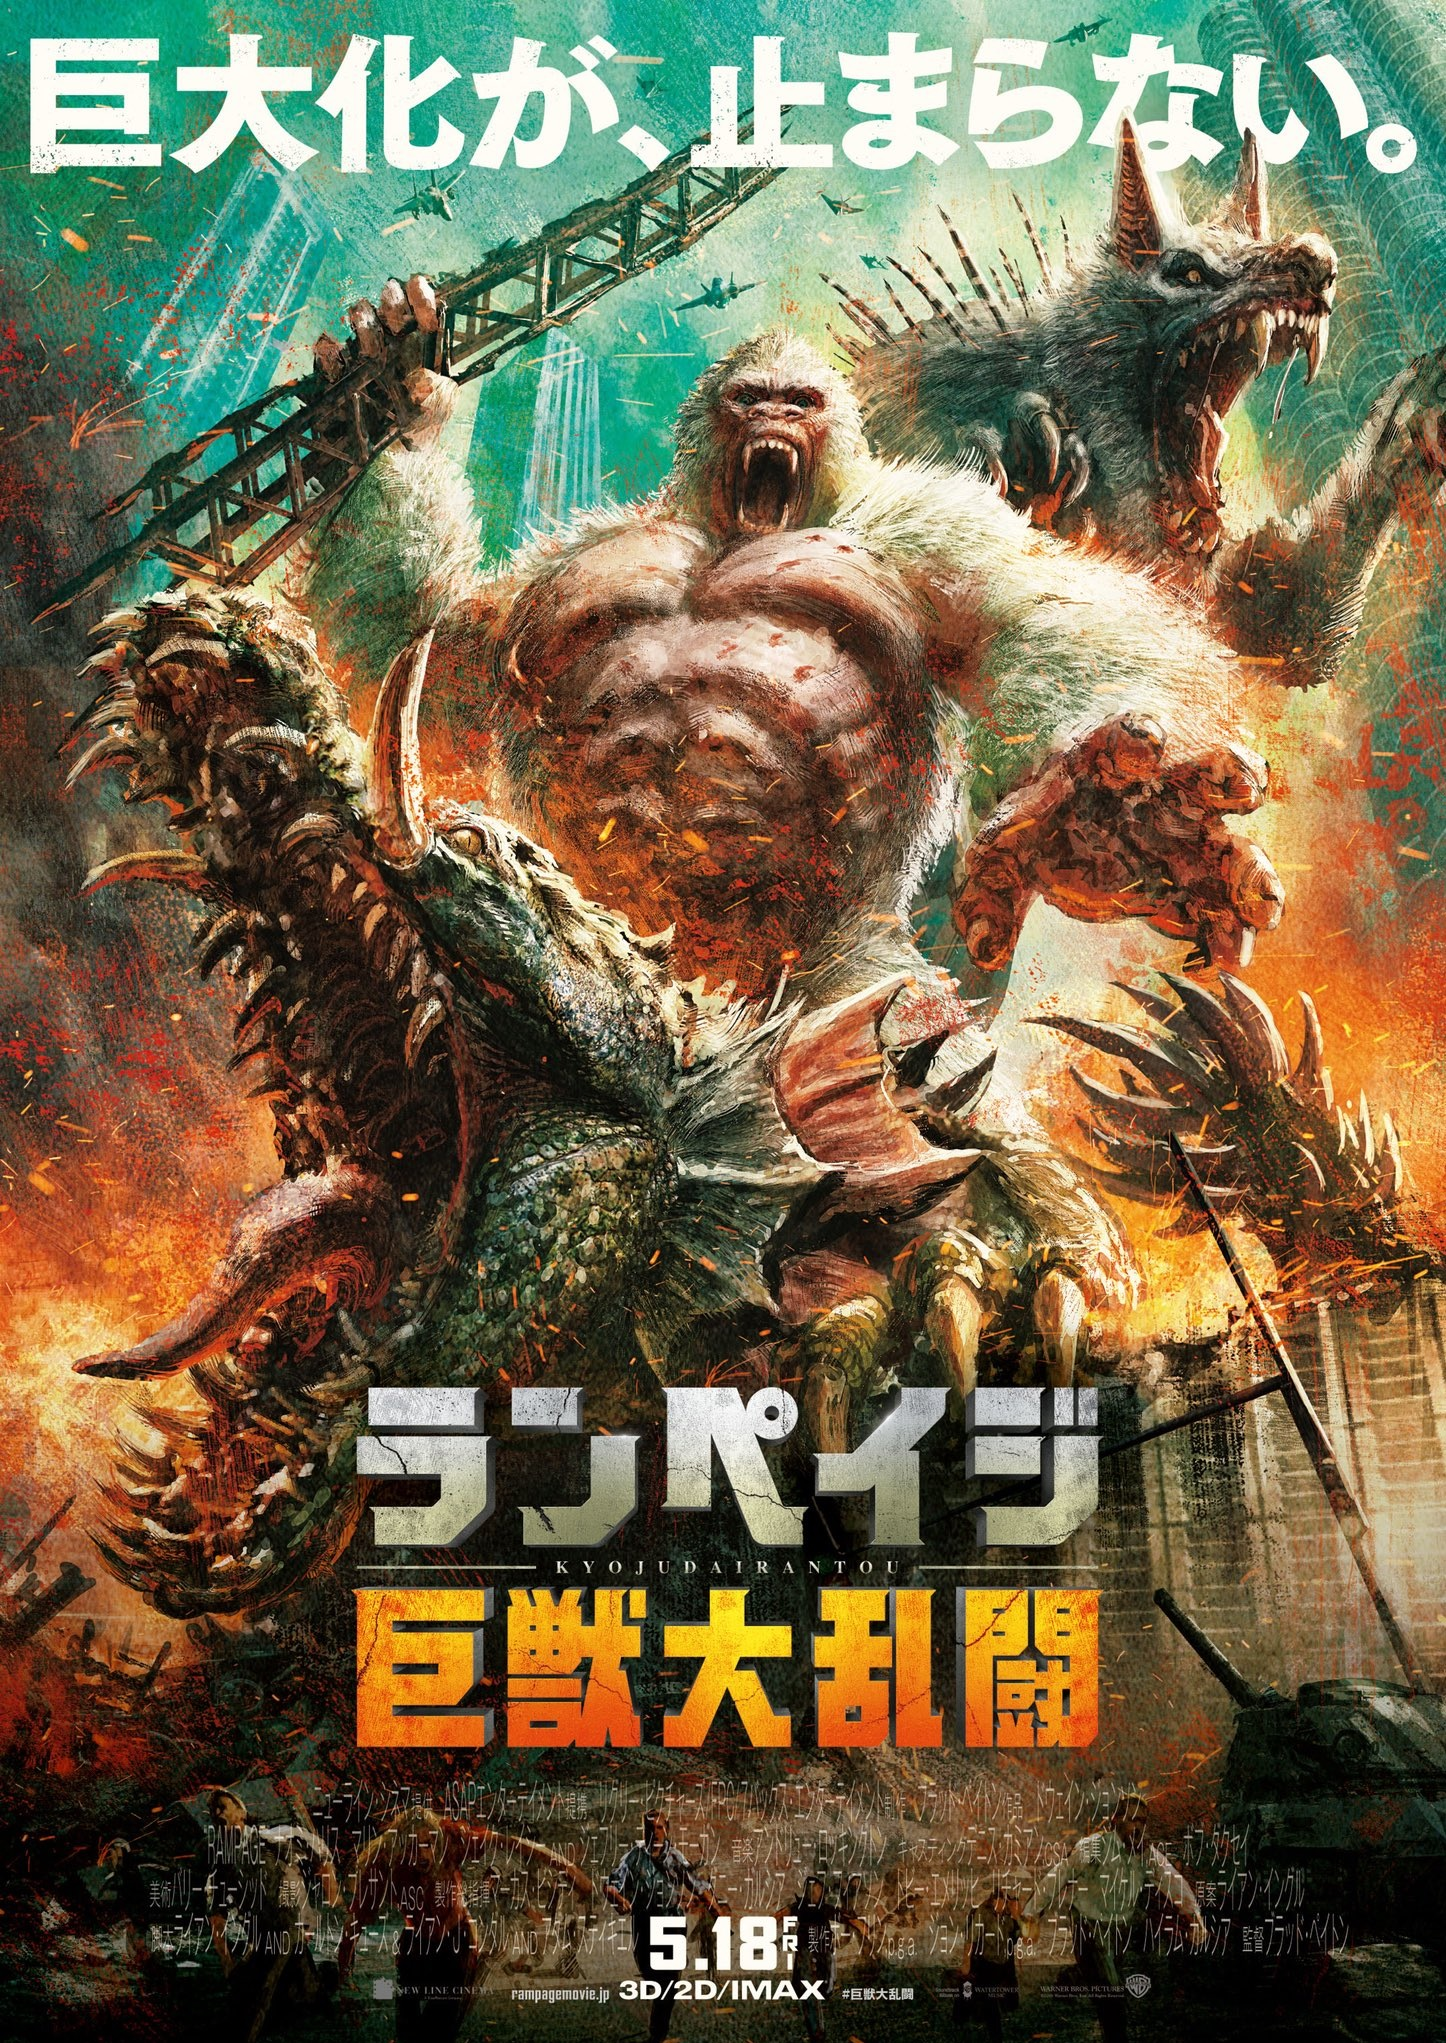 The Insane Japanese Poster For Rampage Is The Coolest One Yet